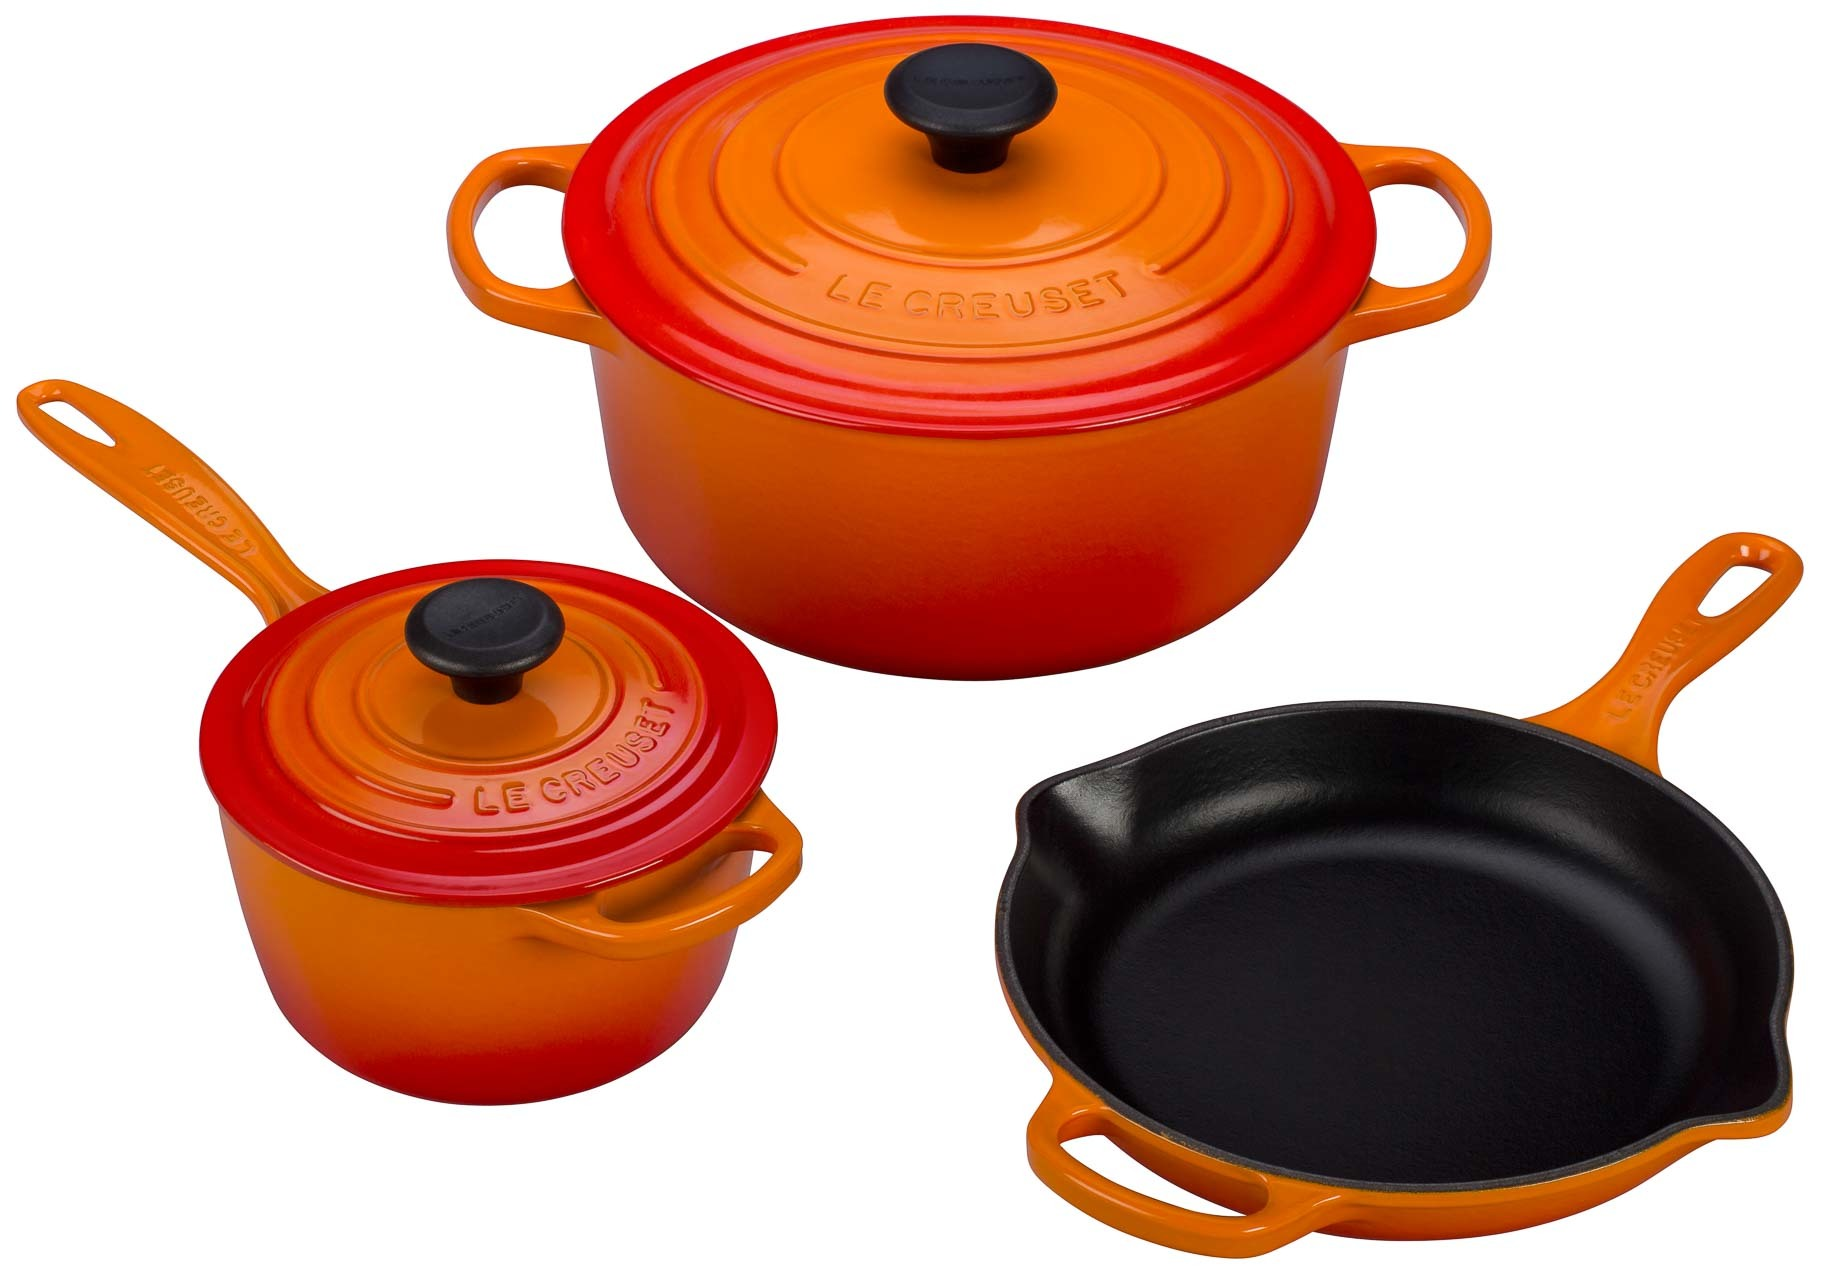 Le Creuset giveaway for the release of my book, L'appart!